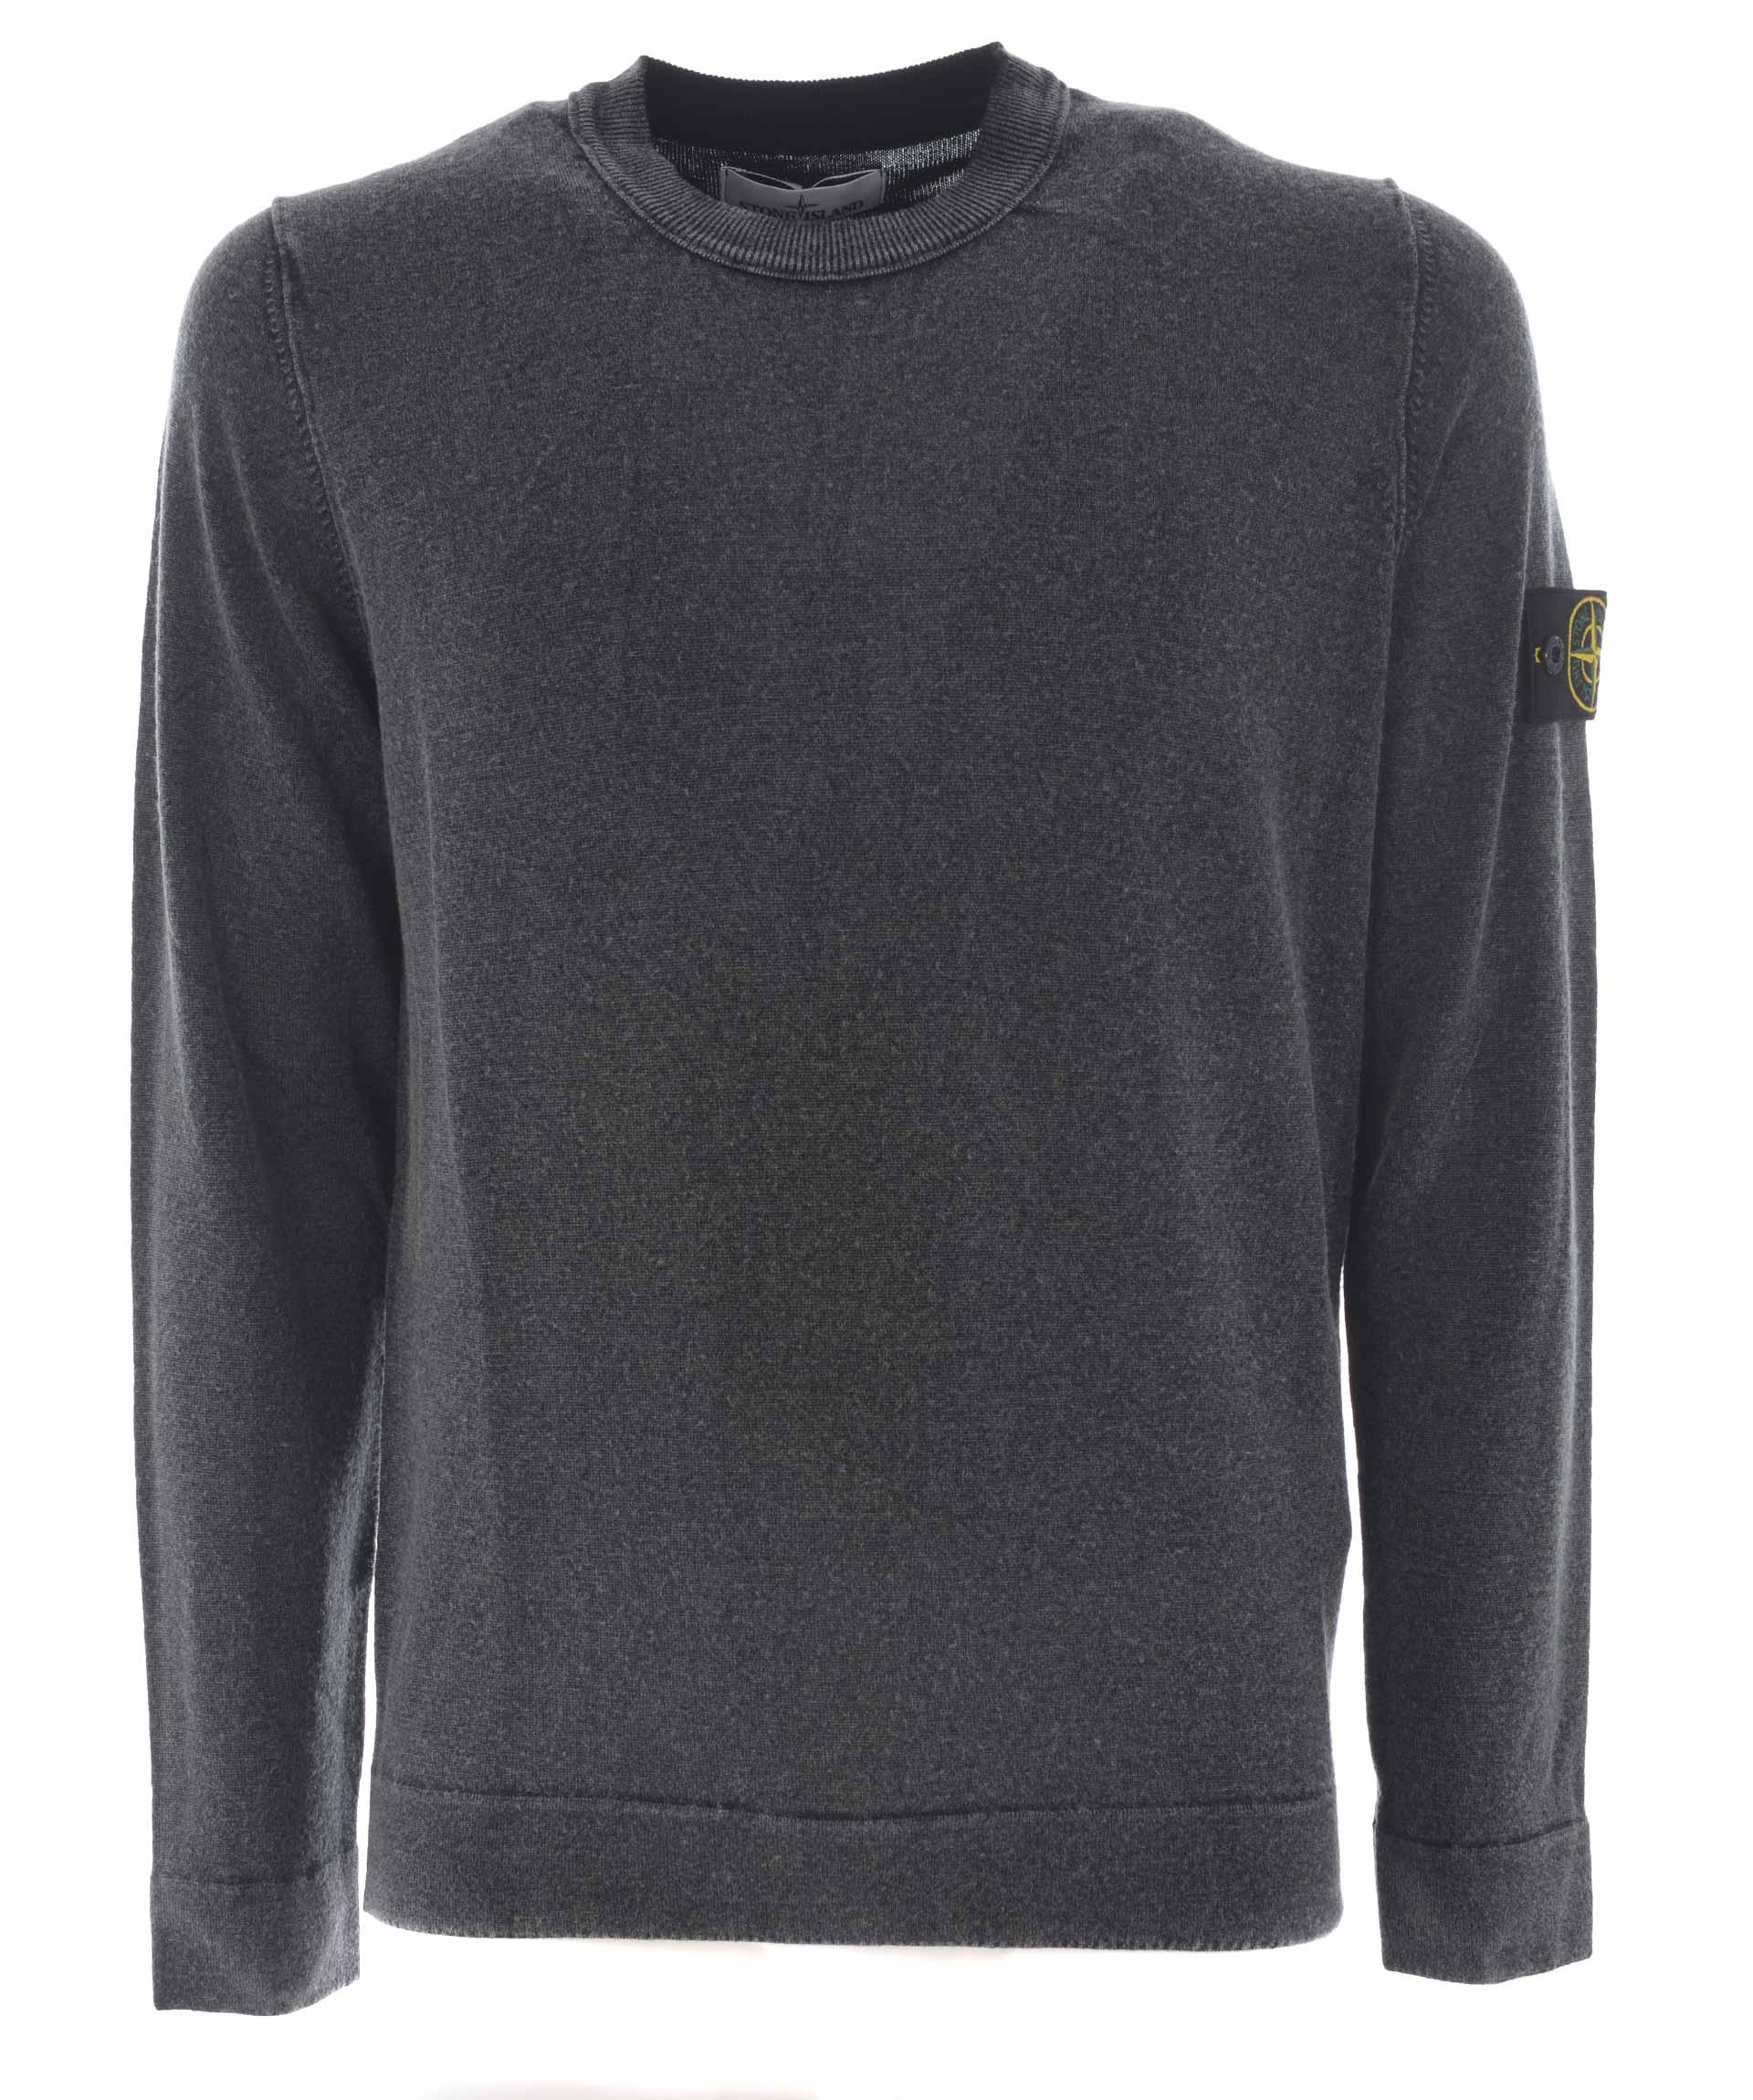 Stone Island Classic Sweater In Grigio Antracite